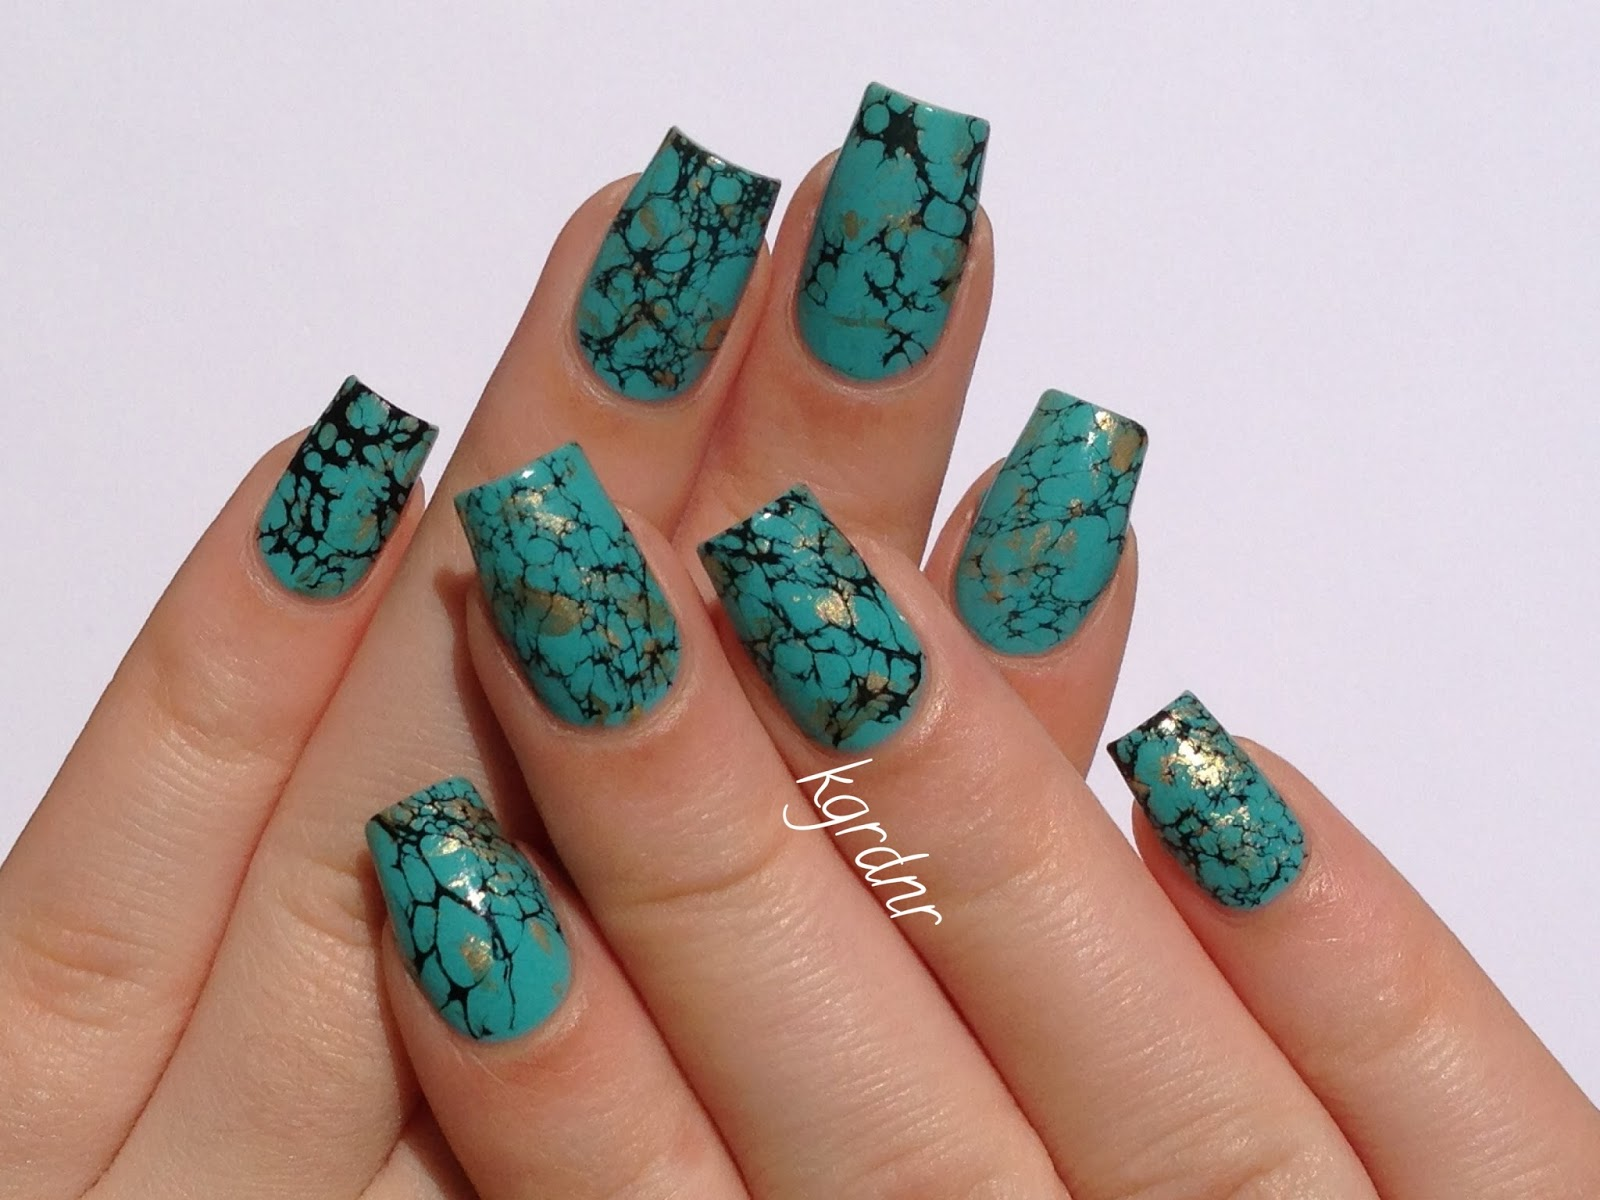 Lacquerstyle turquoise stone nails tutorial turquoise stone nails tutorial prinsesfo Choice Image